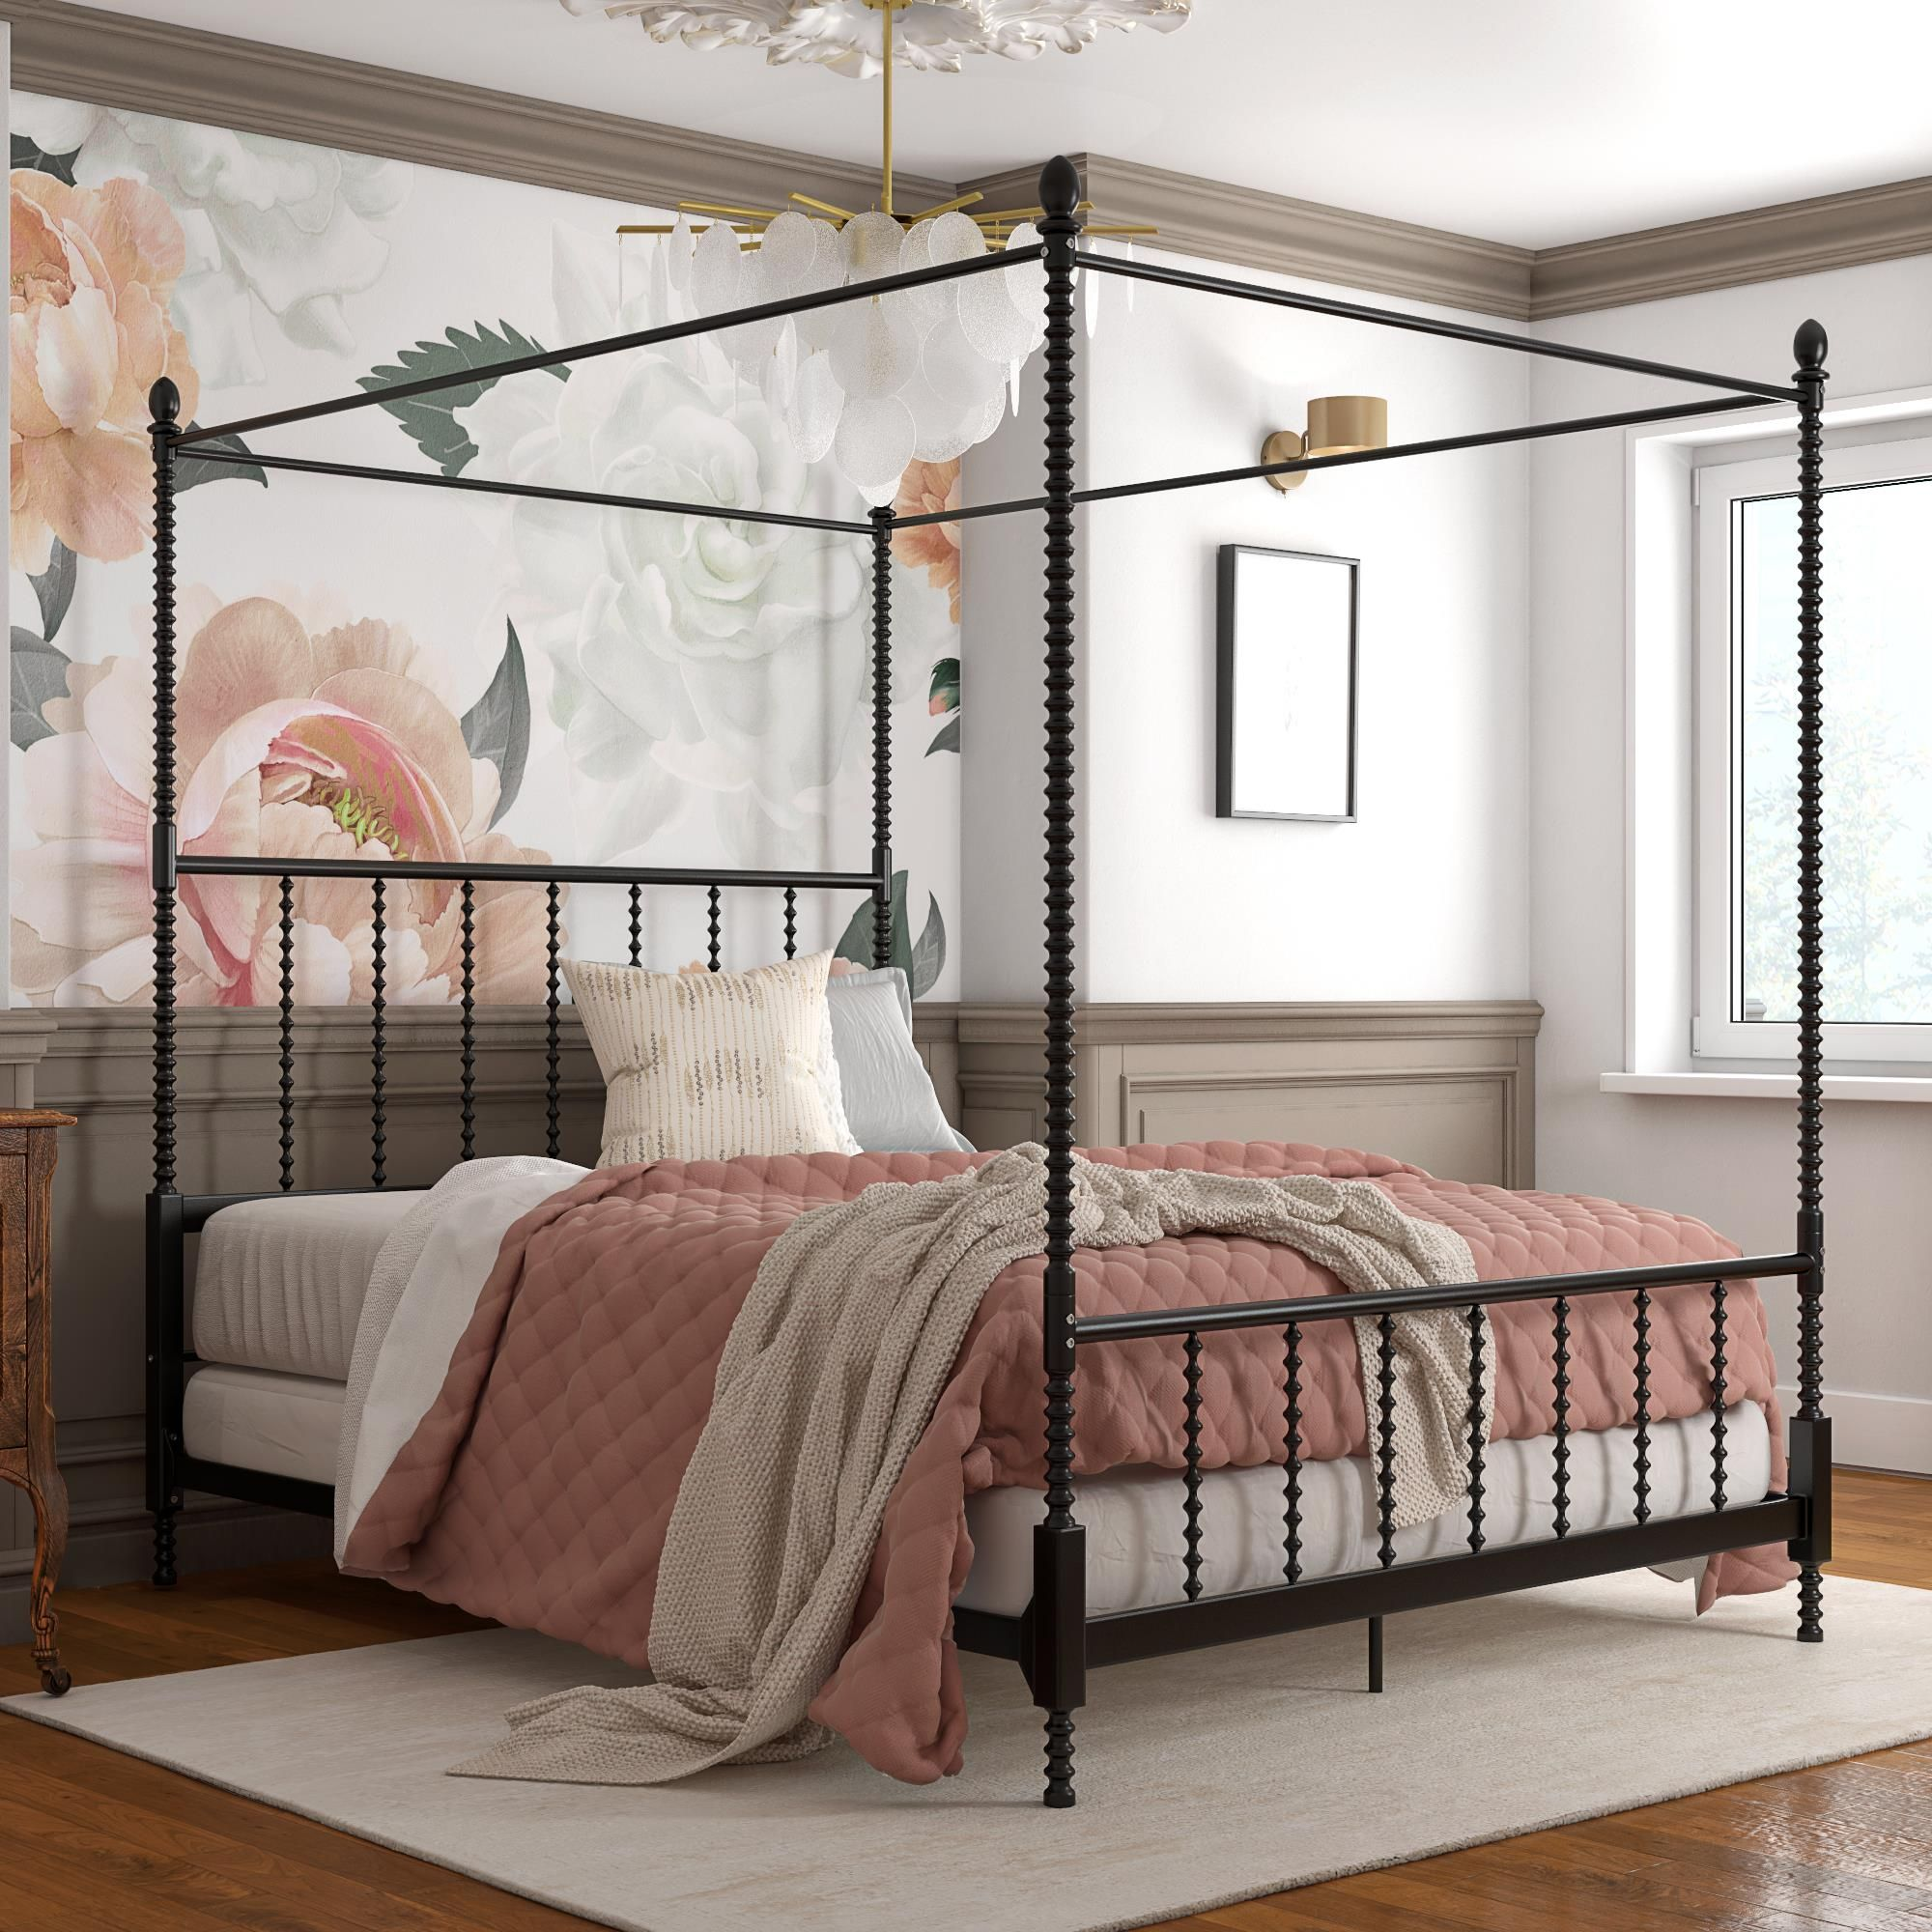 Home in 2020 Metal canopy bed, Black canopy beds, Canopy